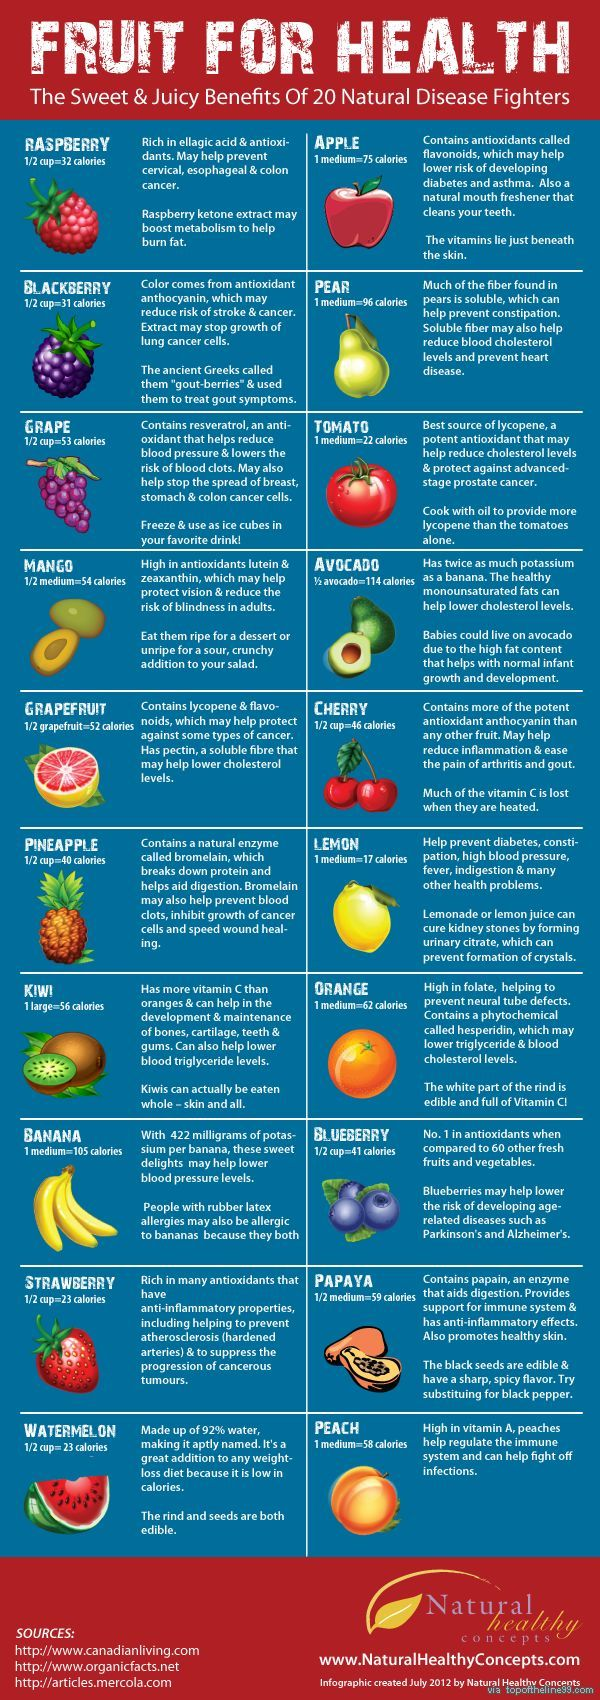 What you put in your body affects how you feel. That's why you should watch what you eat in addition to maintaining a balanced workout regimen. Adding more fruits to your diet could also help your cause. This infographic by Natural Healthy Concepts covers the benefits of various foods: